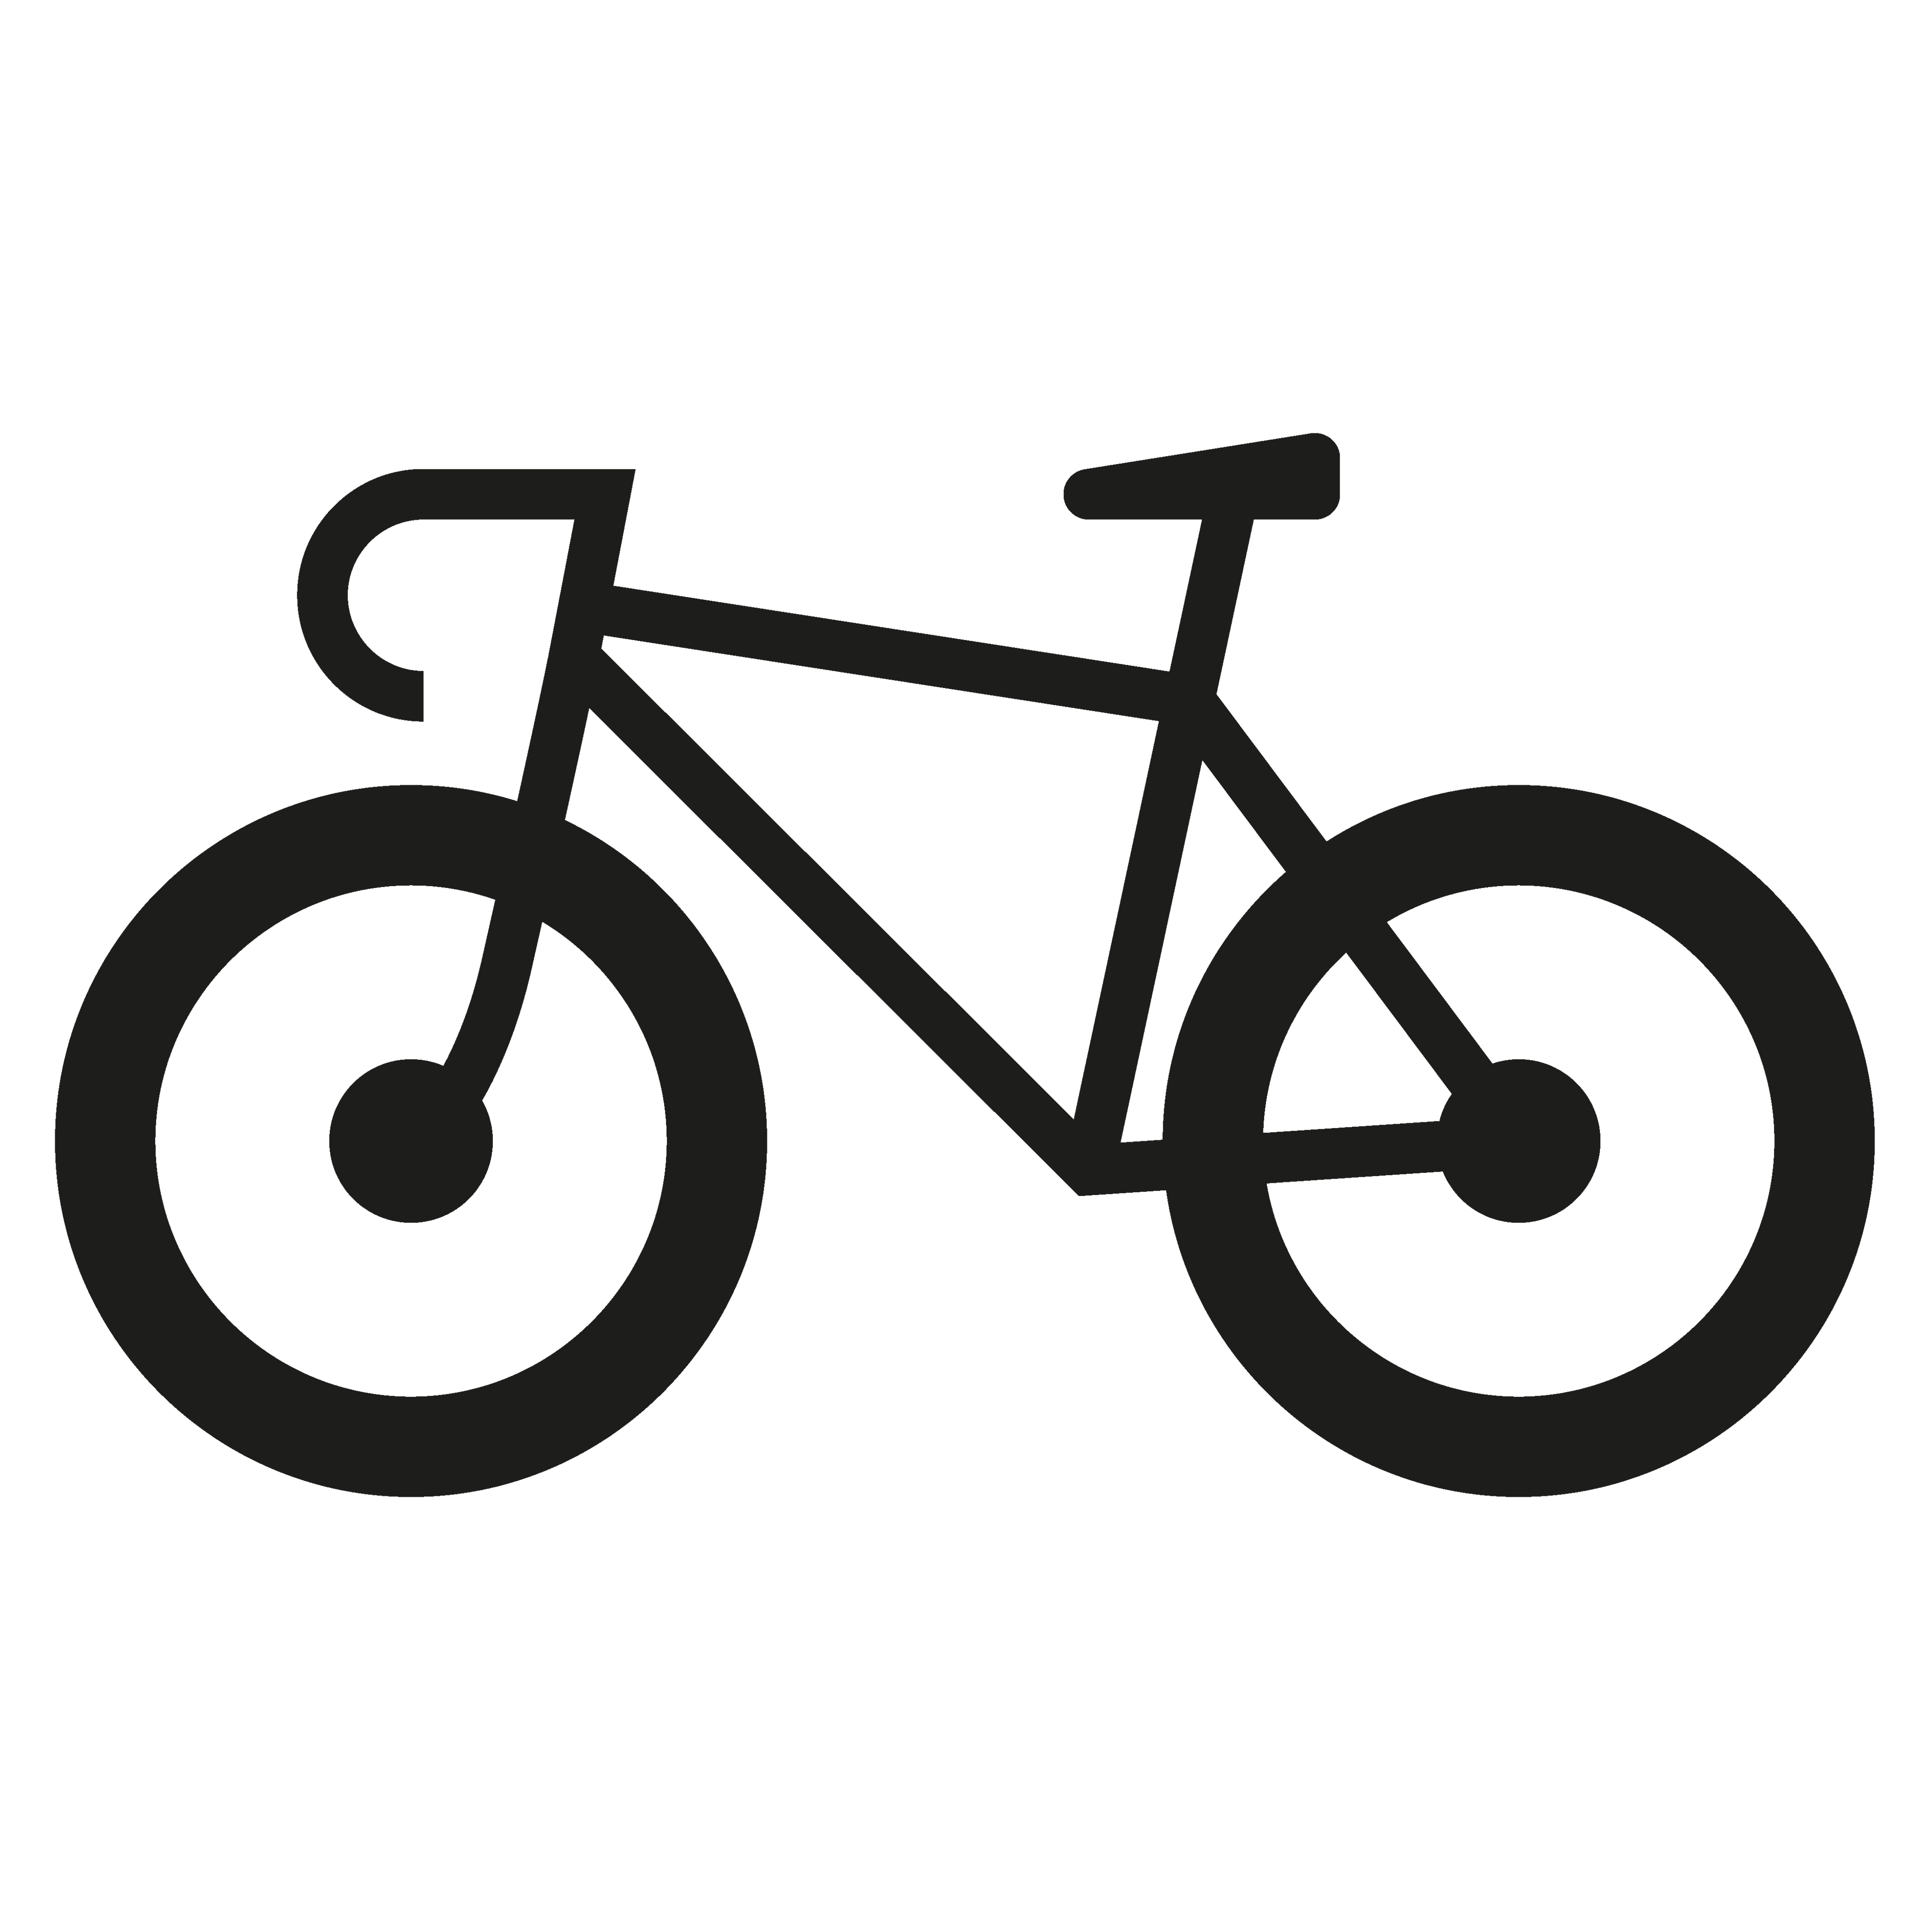 Clipart bicycle spring. Fix your own bike